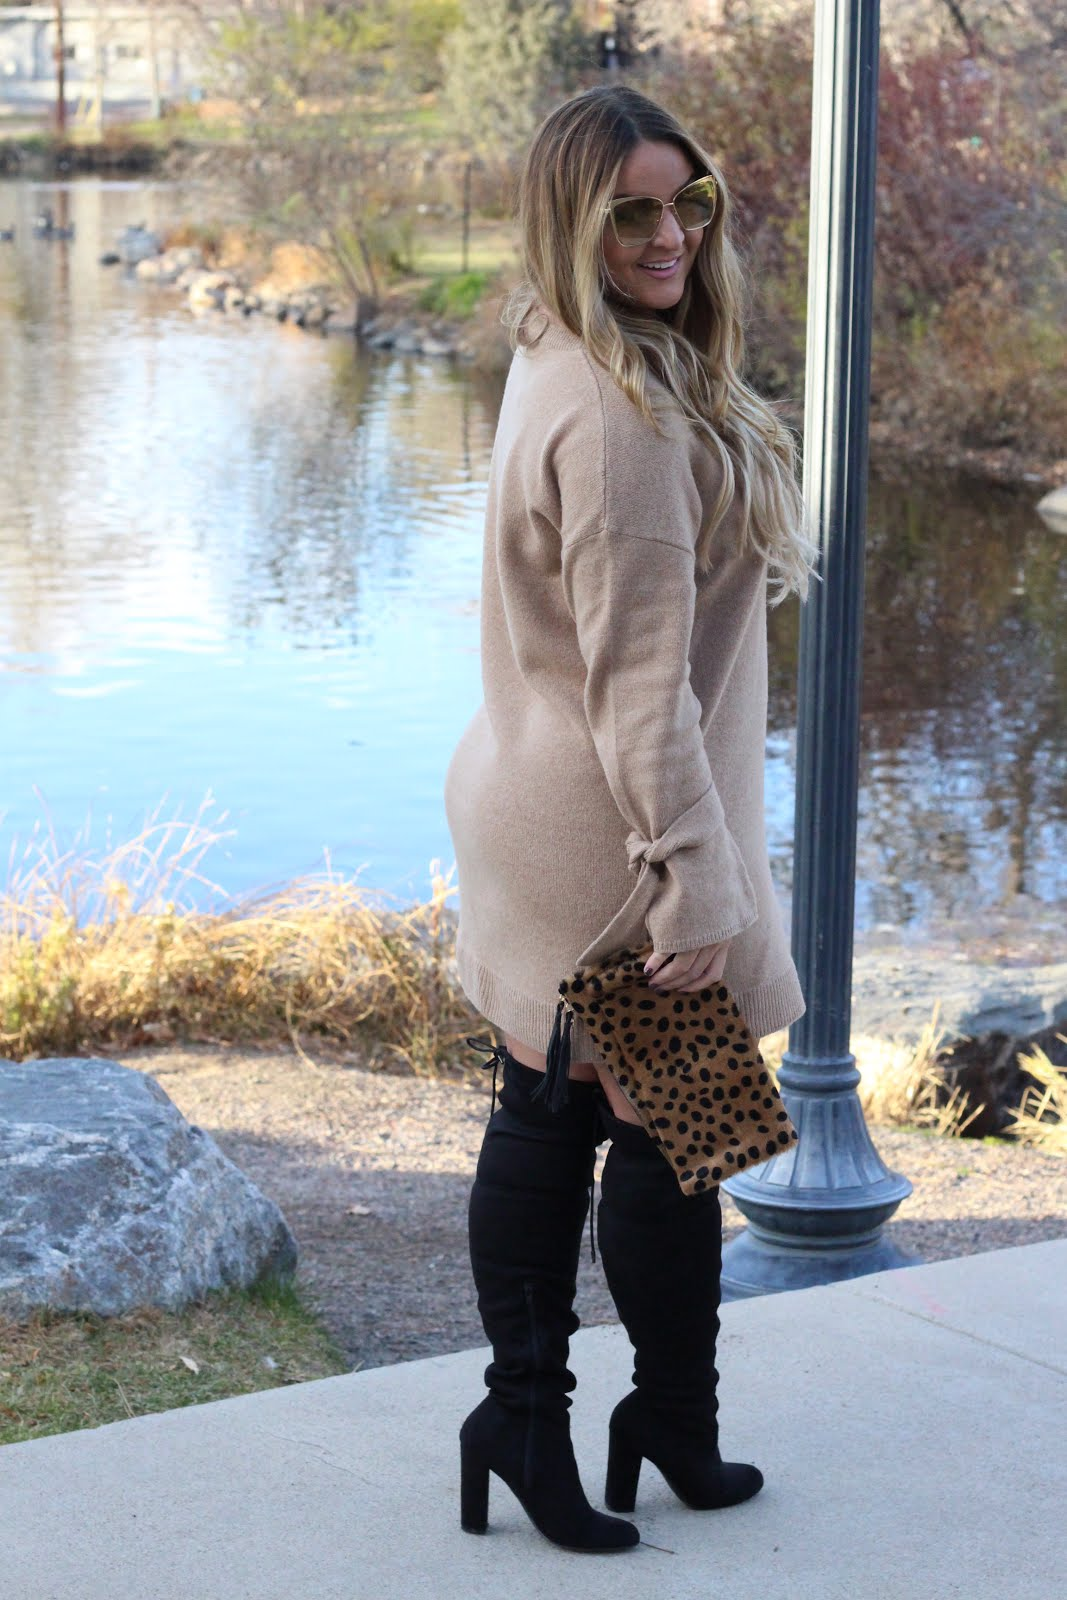 Sweater Weather & Thigh high boots by Colorado fashion blogger Delayna Denaye